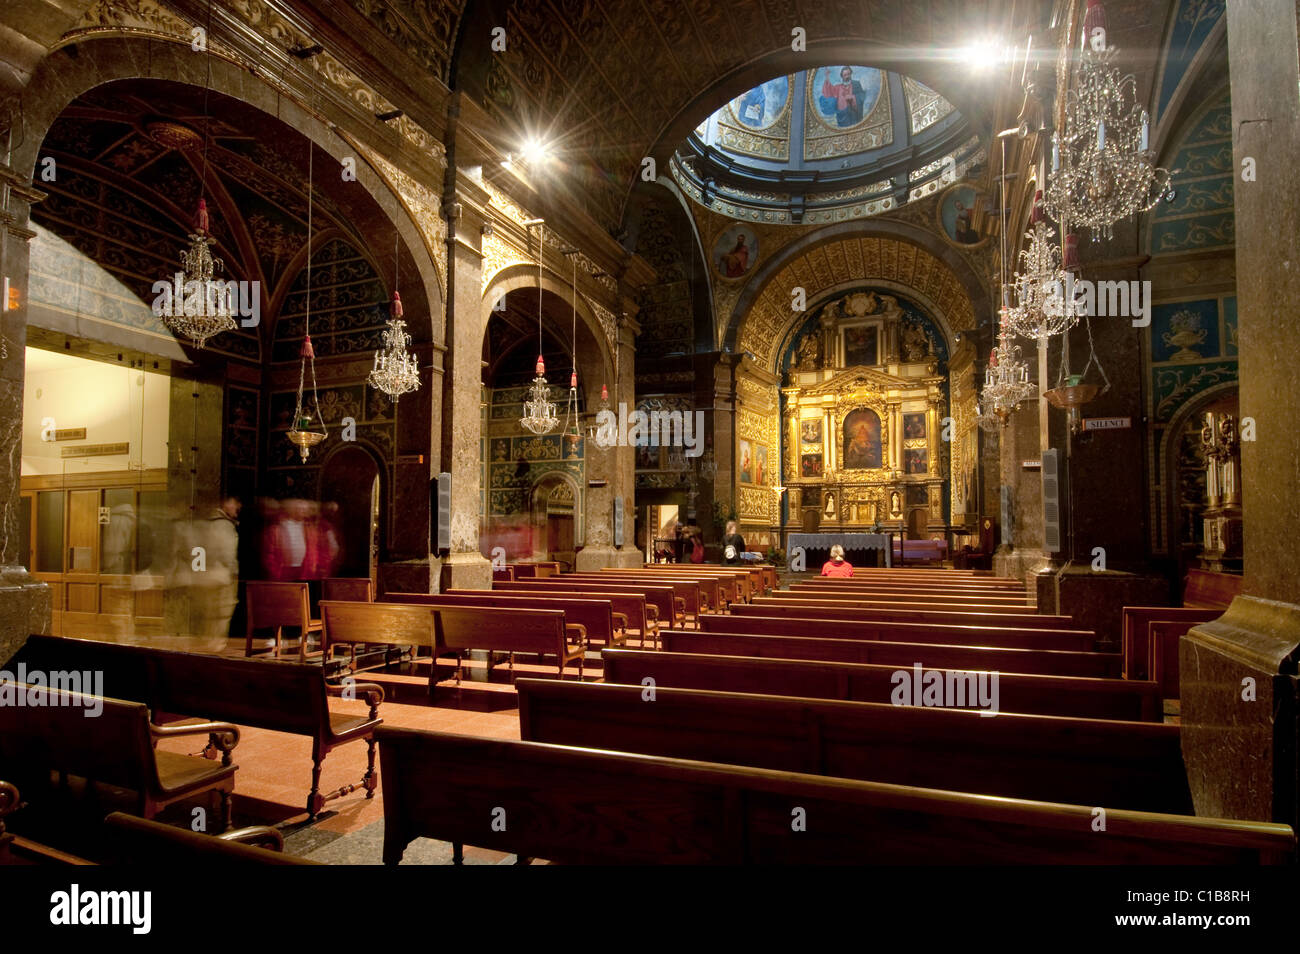 Interior of church at Monastery of Our Lady of Lluc, Mallorca, Spain - Stock Image